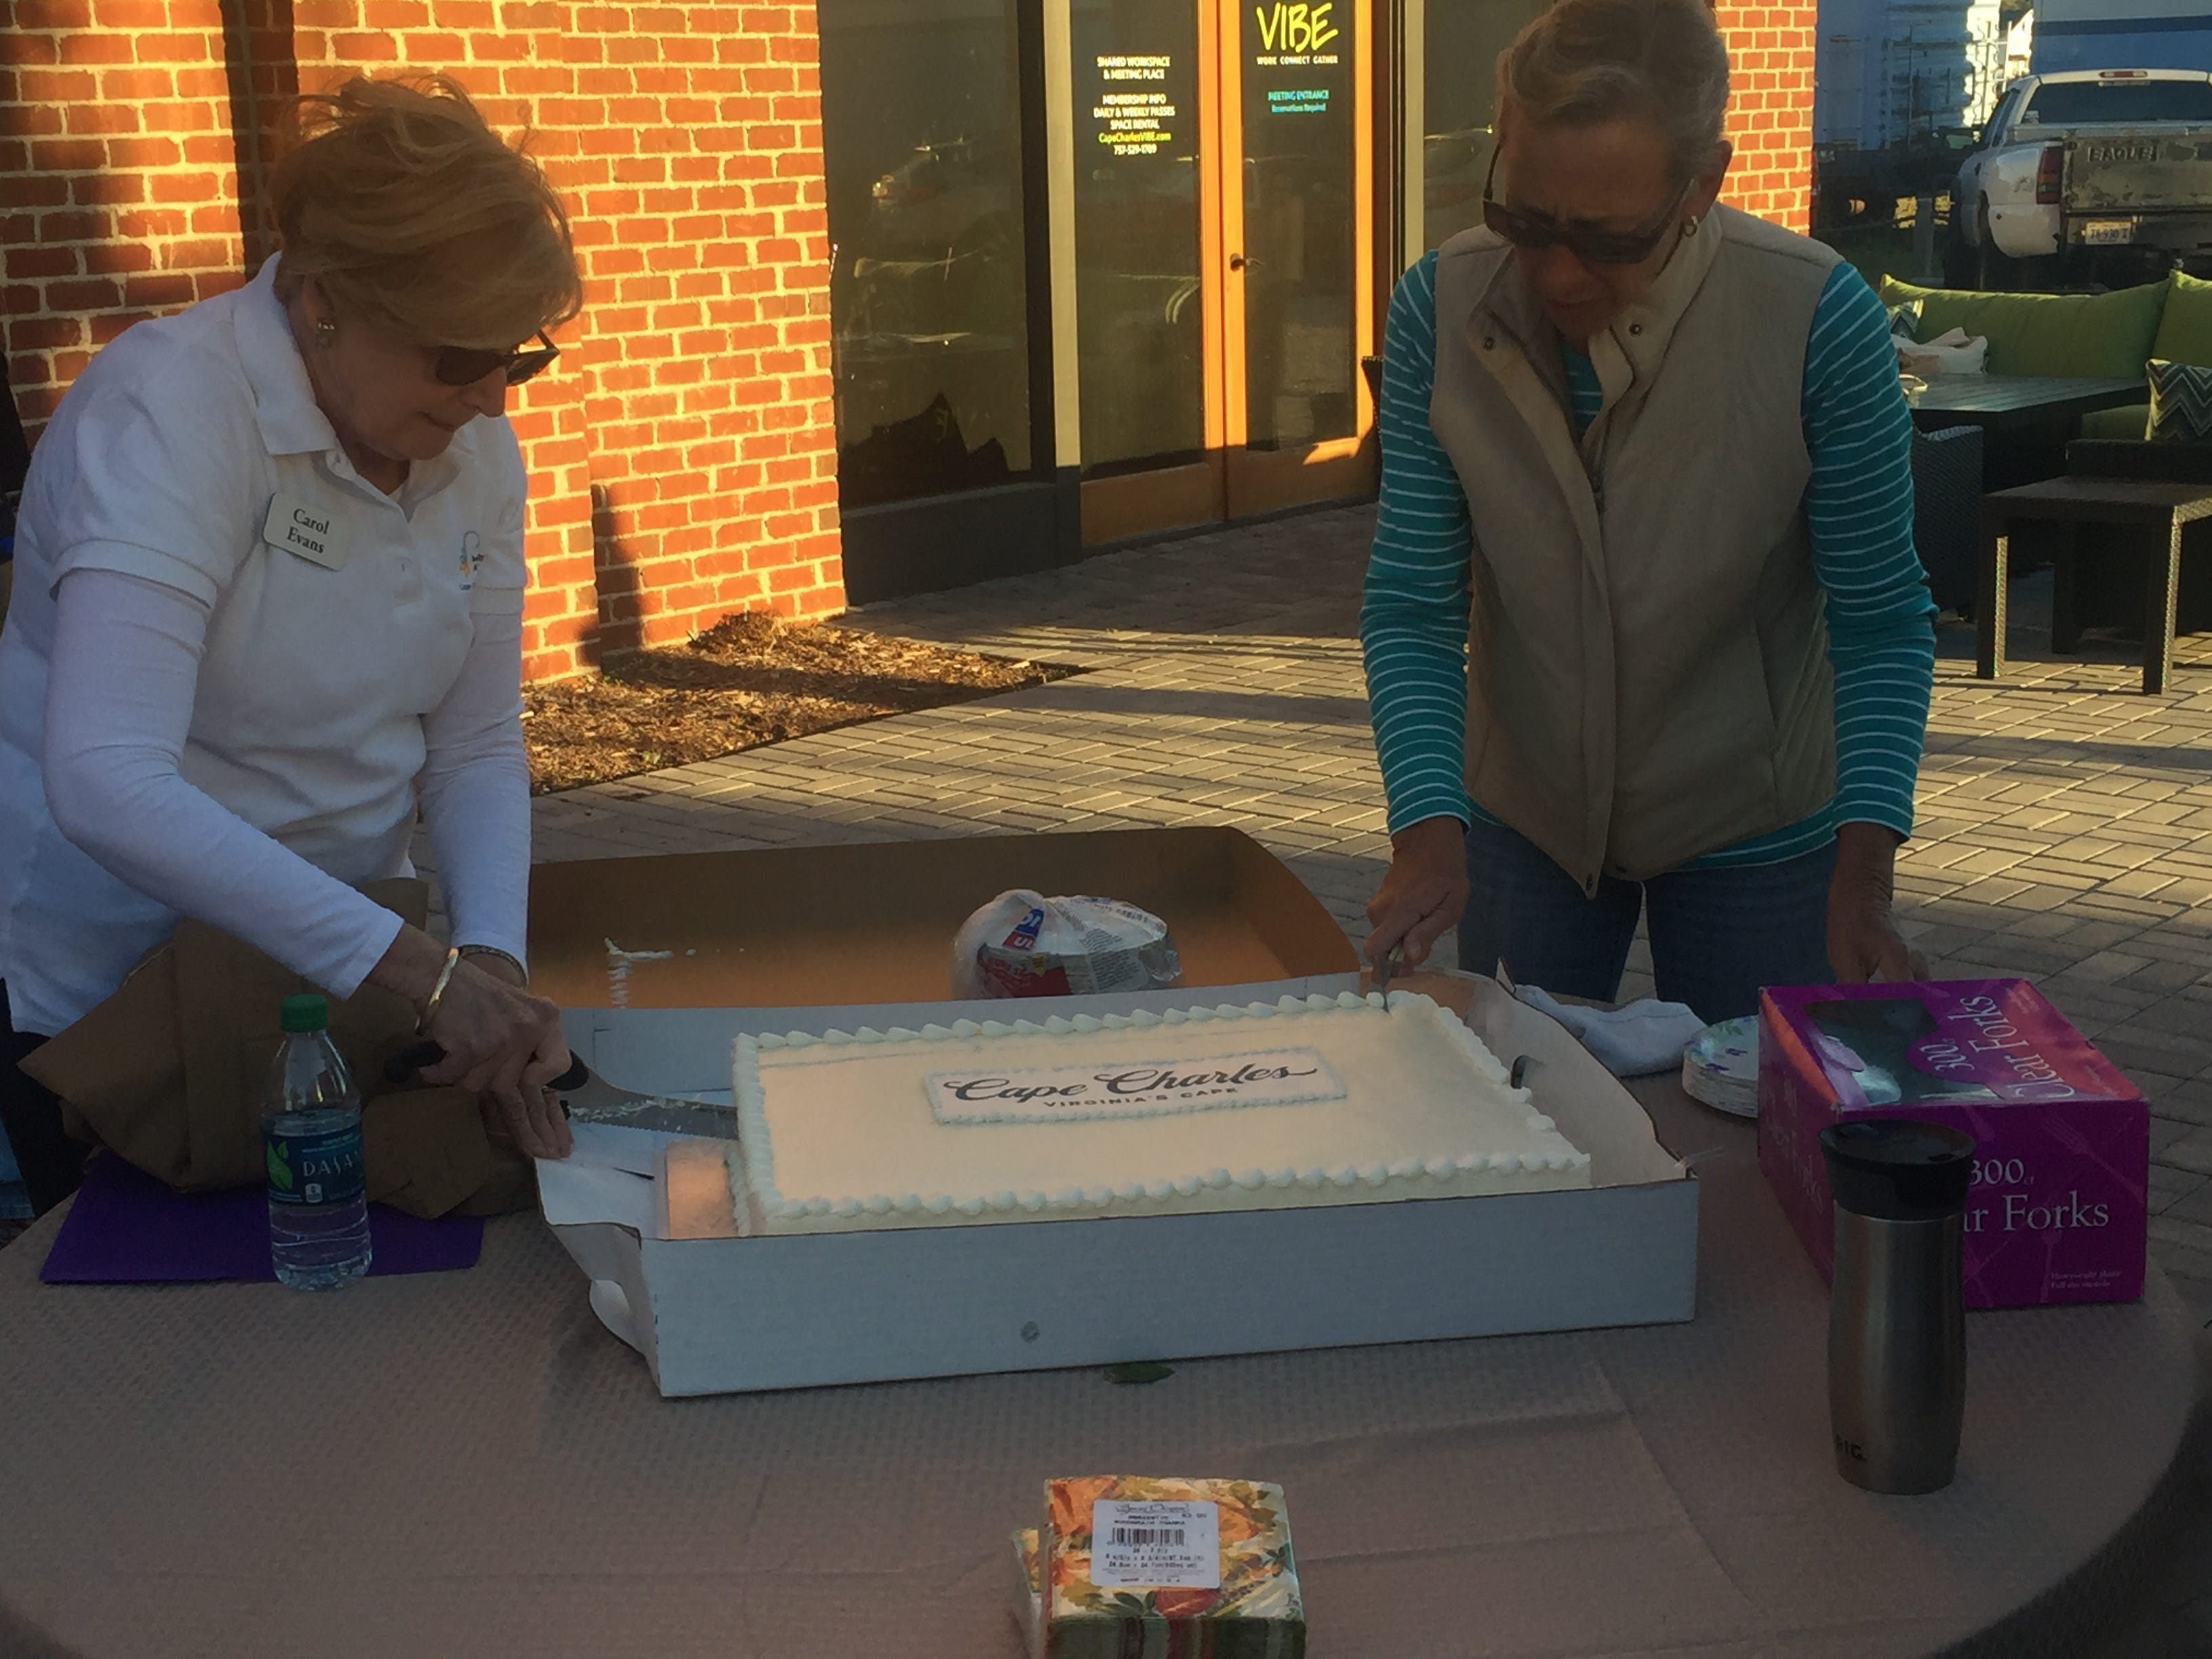 Cape Charles volunteers cut a cake during a ceremony celebrating the town's new brand and logo on Friday, Oct. 19, 2018 in Cape Charles, Virginia.